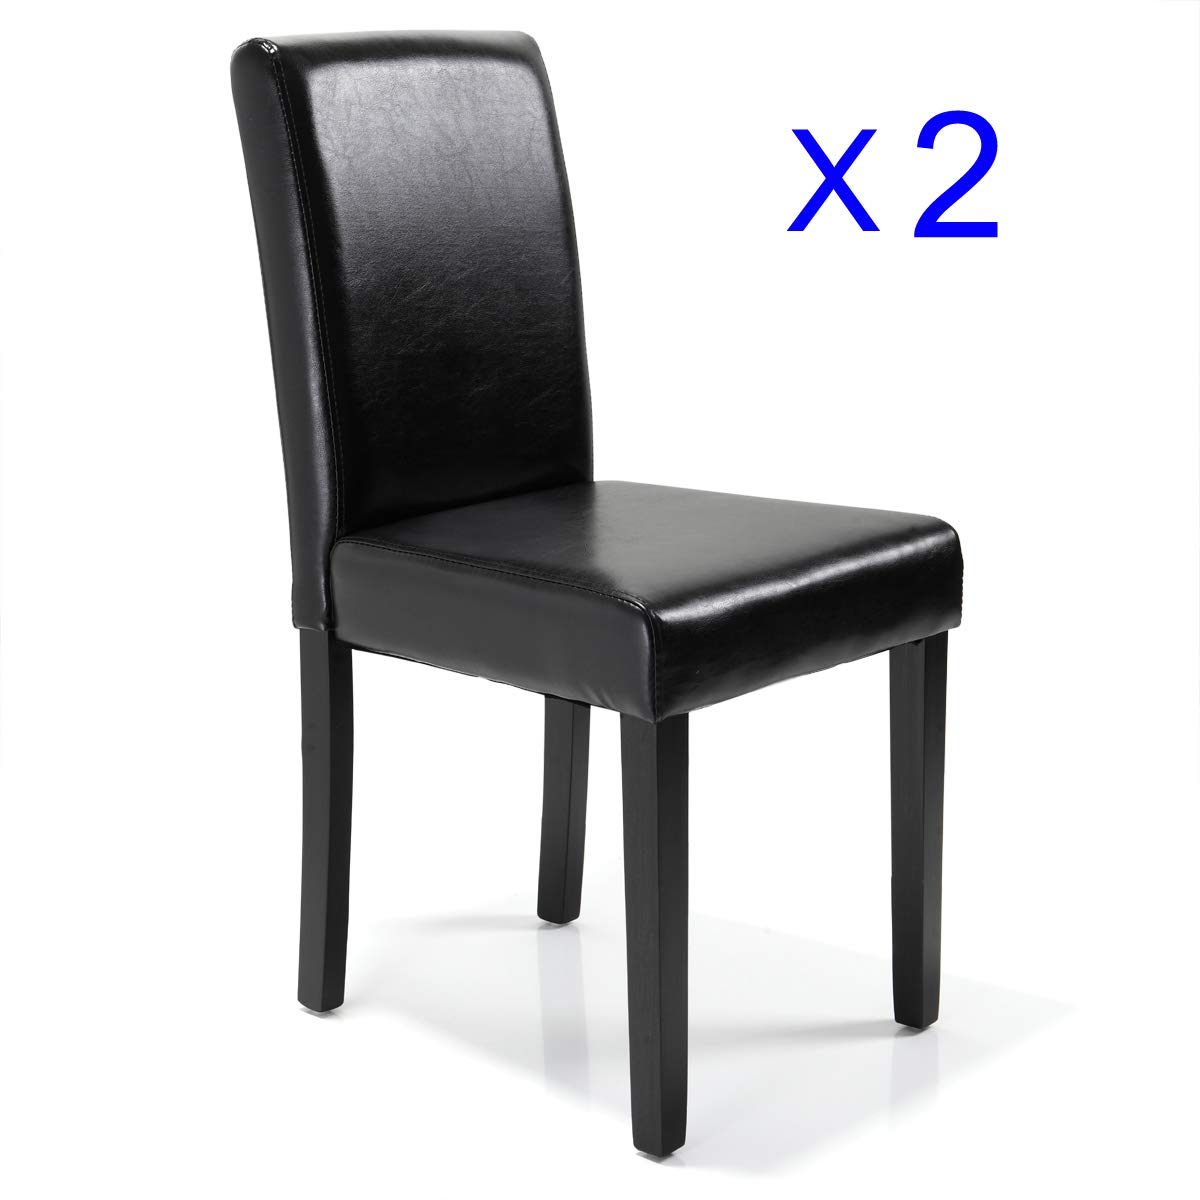 JAXPETY Set of 2 Urban Style Leather Dining Chairs Solid Wood Legs Chair Black